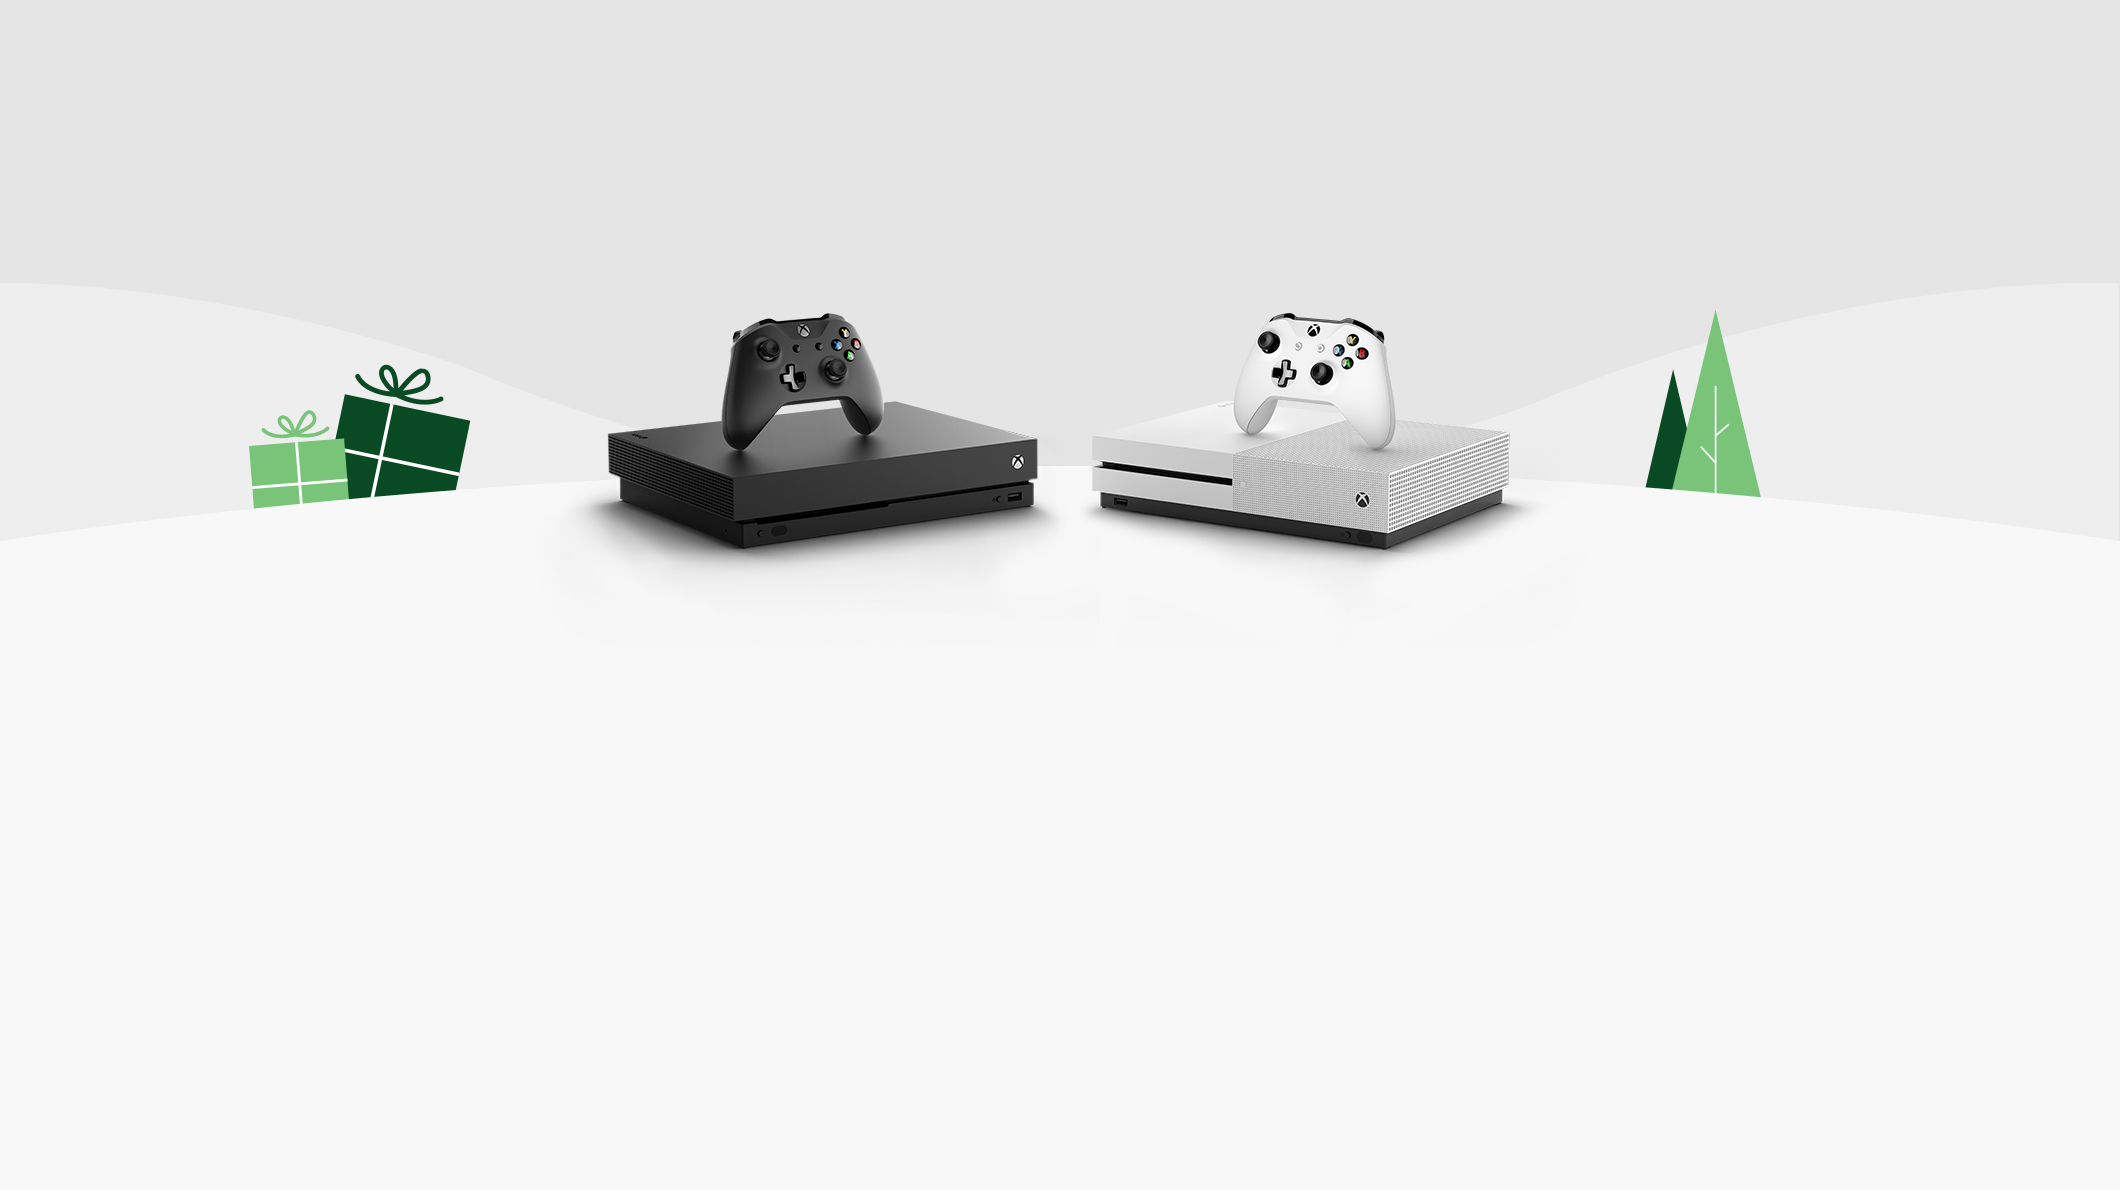 An Xbox One X and an Xbox One S